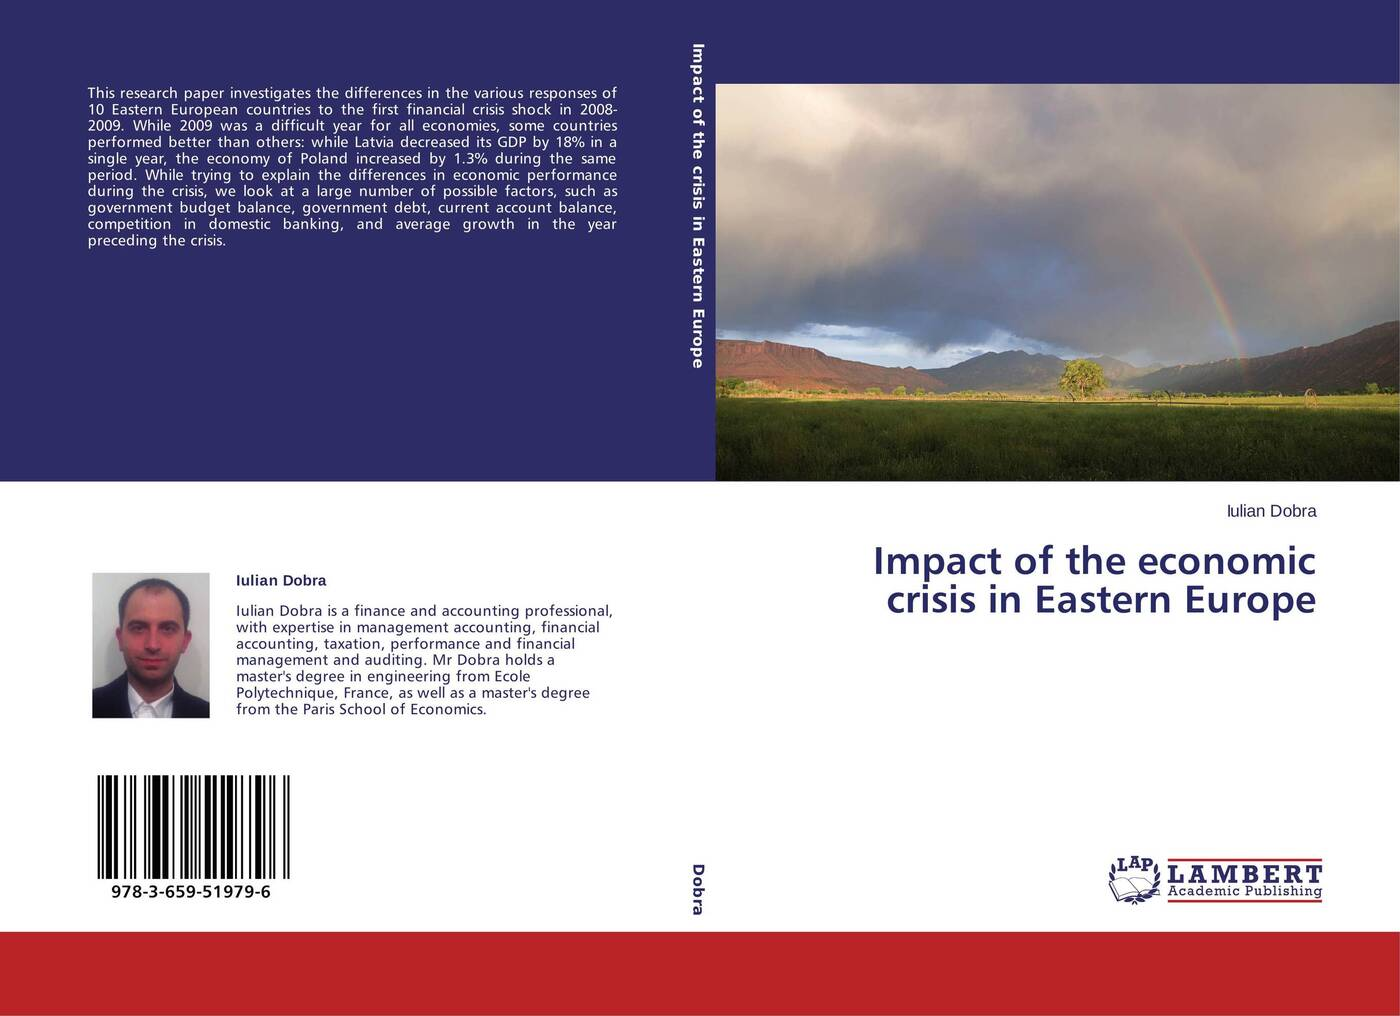 Iulian Dobra Impact of the economic crisis in Eastern Europe assessment of interest rates in see countries during crisis